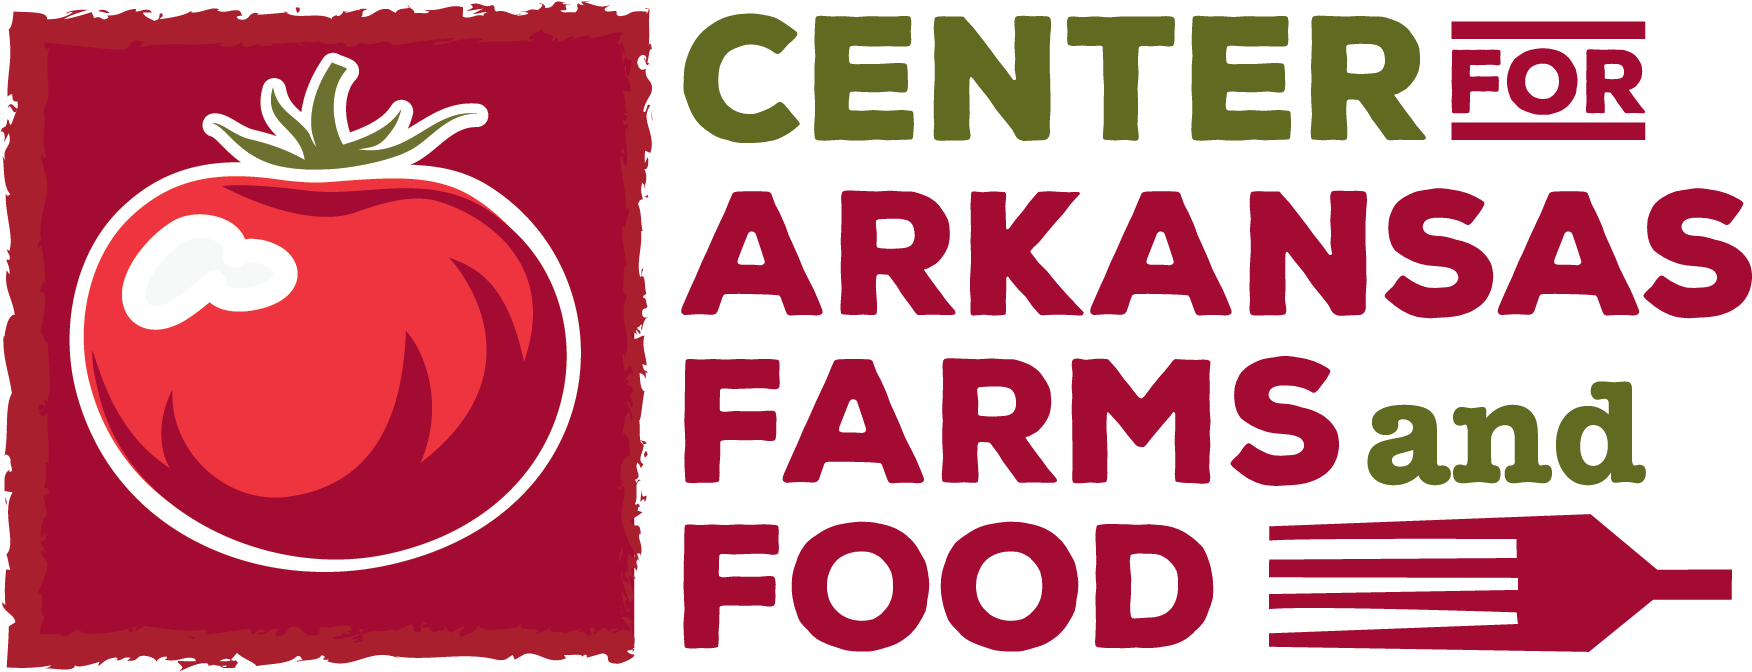 Center for Arkansas Farms and Food